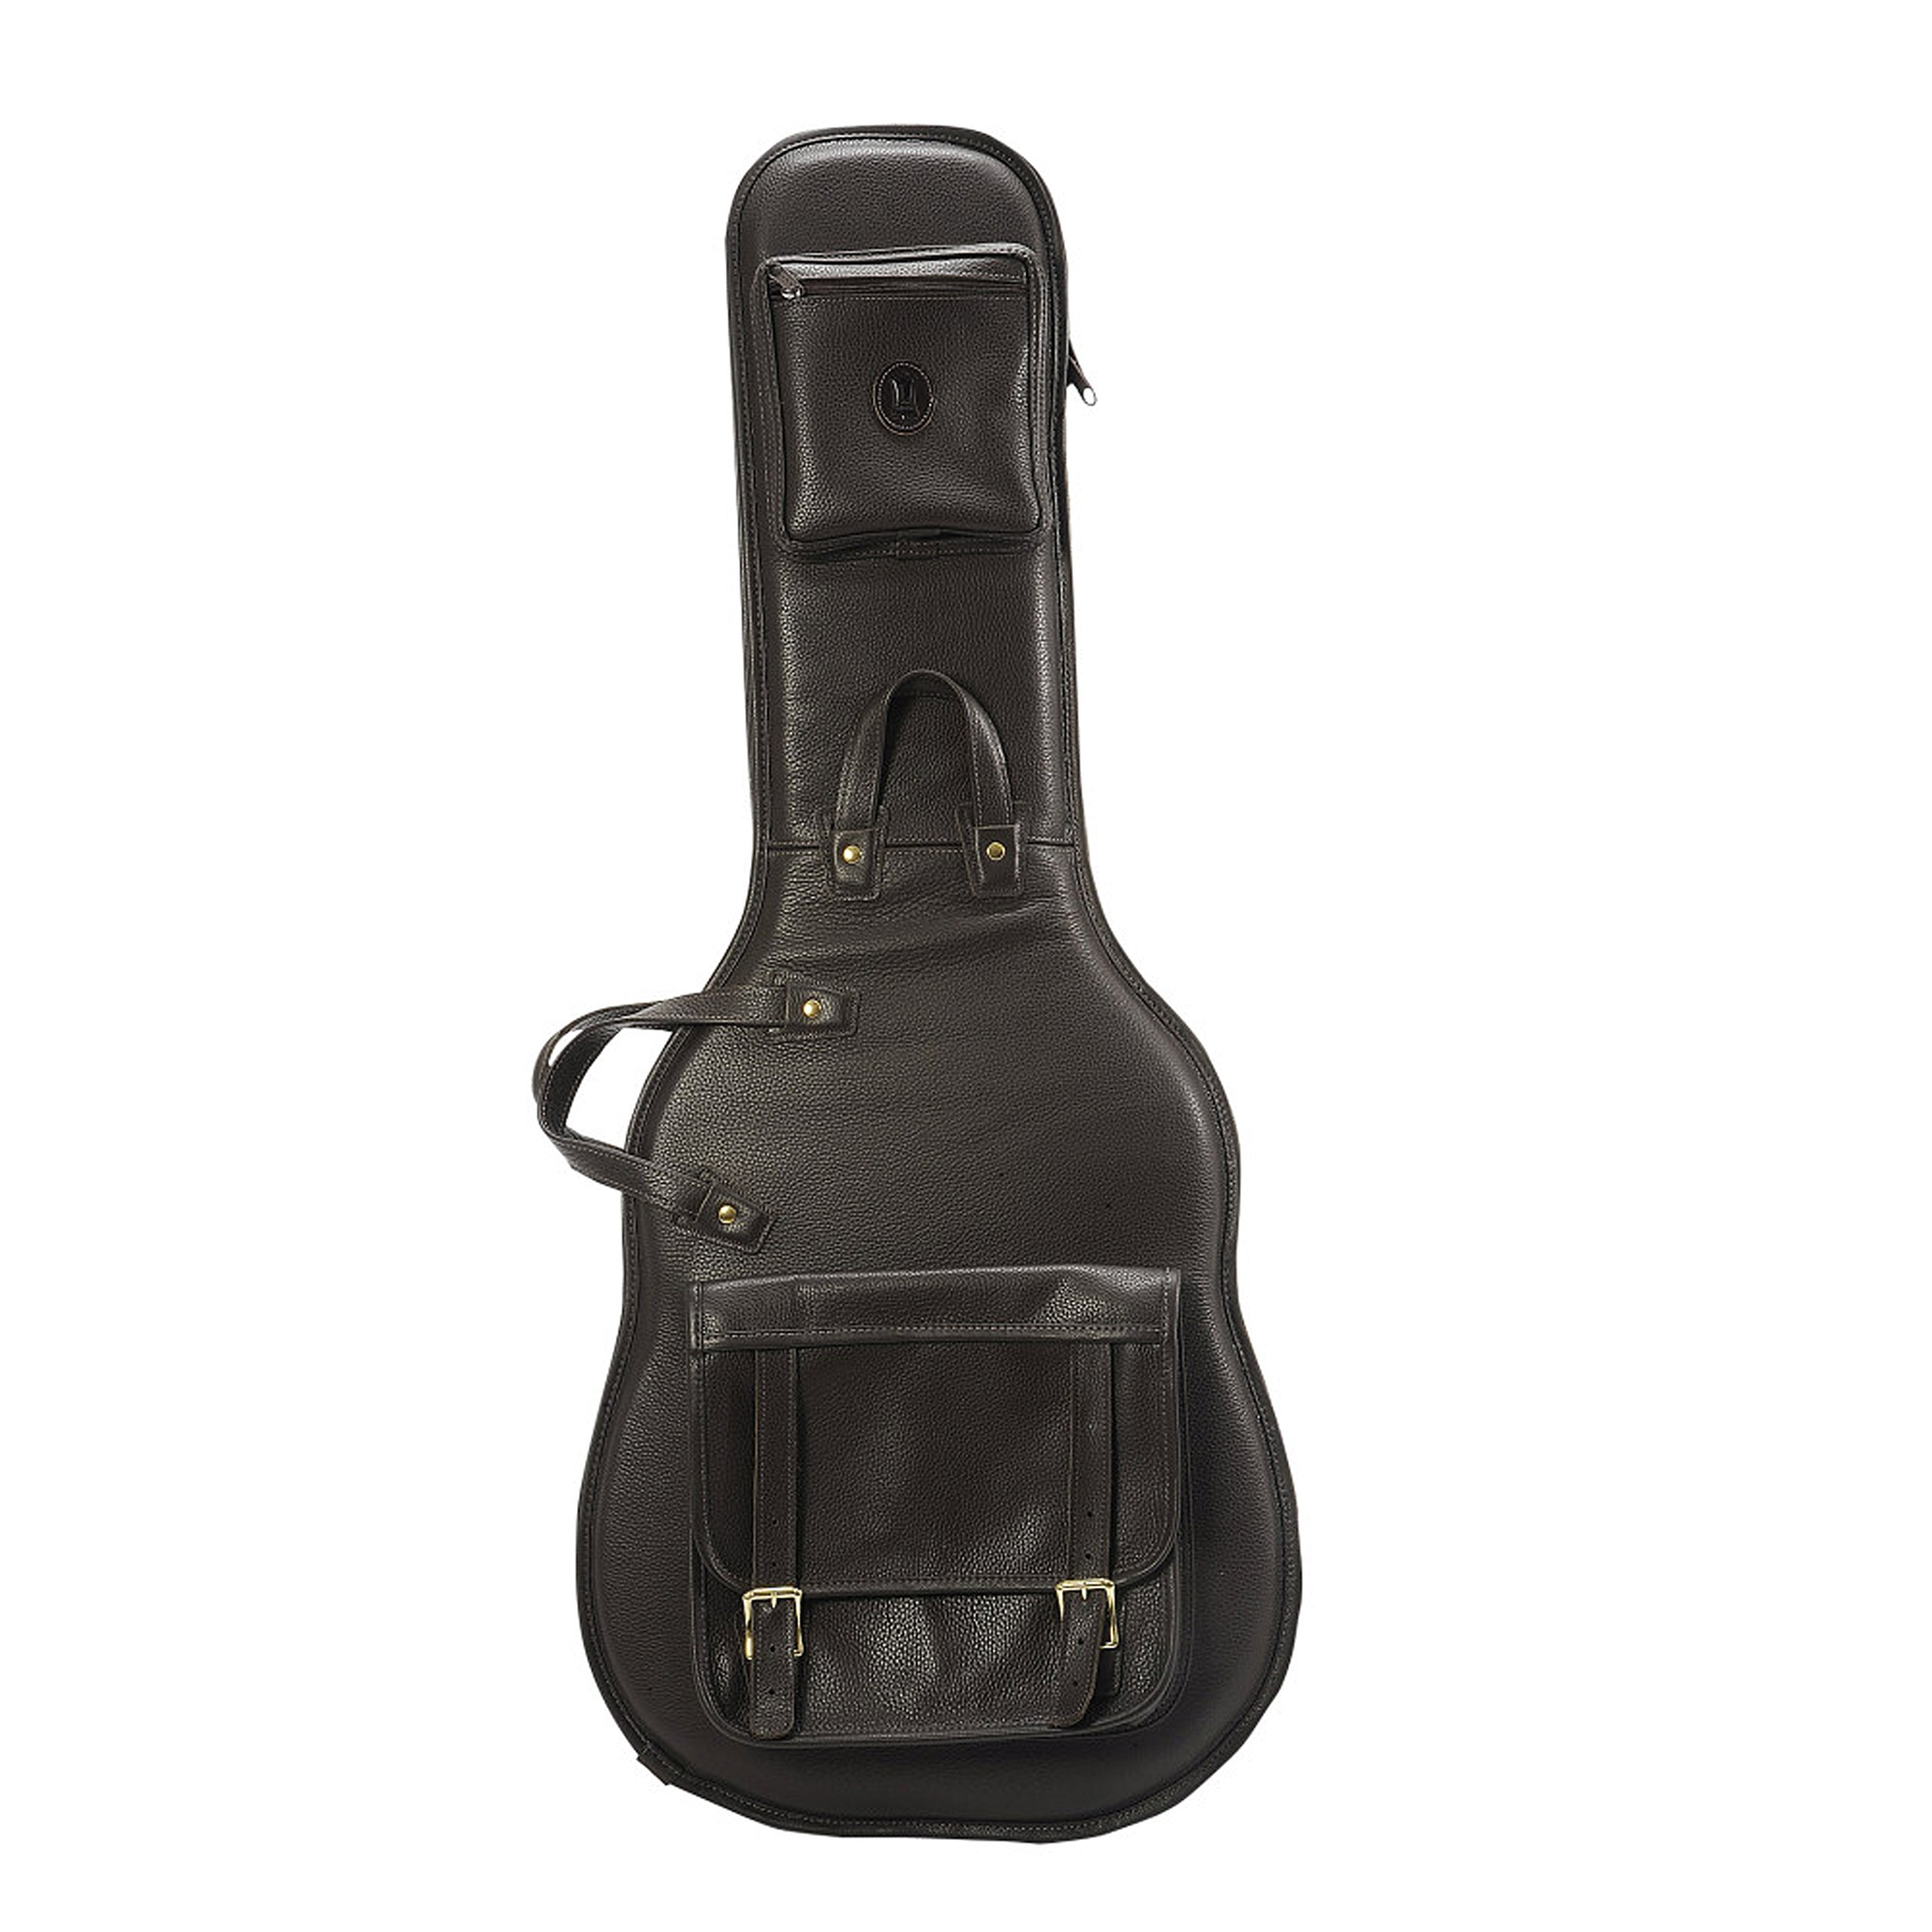 Levy's Leathers LM18-DBR Leather Deluxe Electric Guitar Bag, Dark Brown